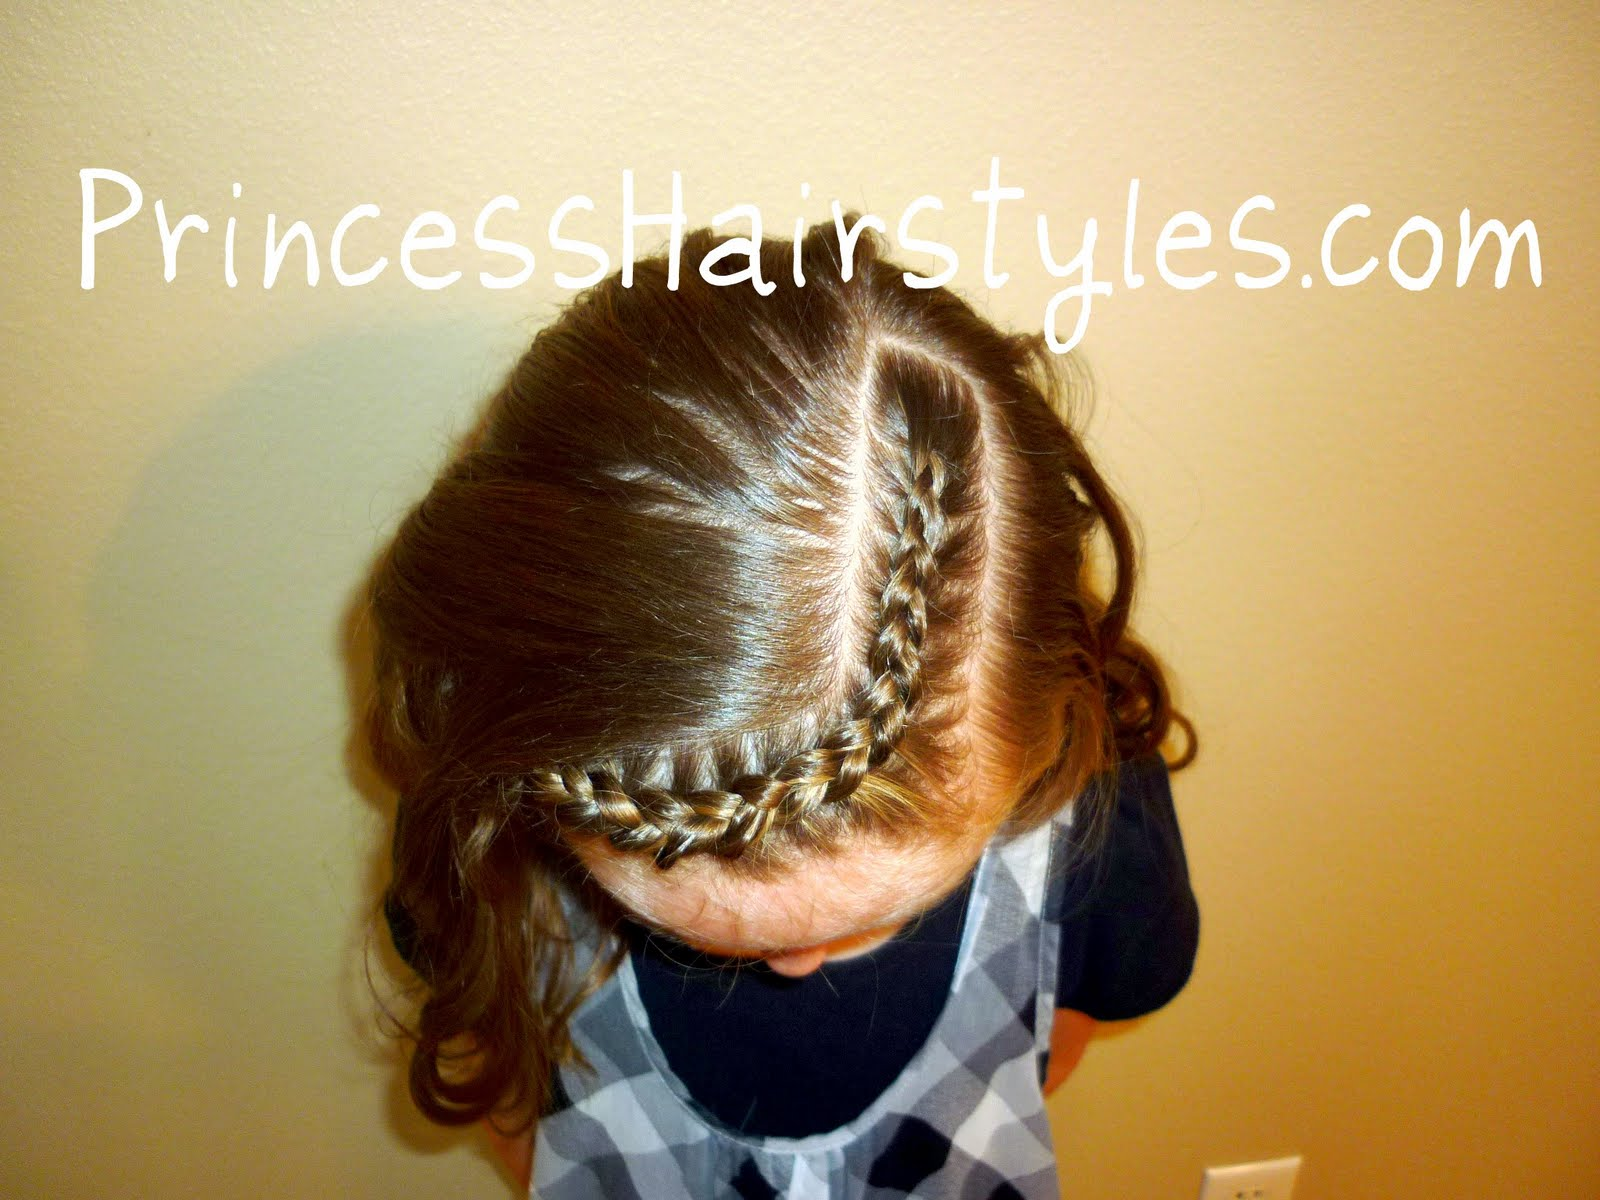 This hairstyle would be cute on any age A hairstyle for little girls . 1600 x 1200.Hairstyles For Girls Ages 12 13